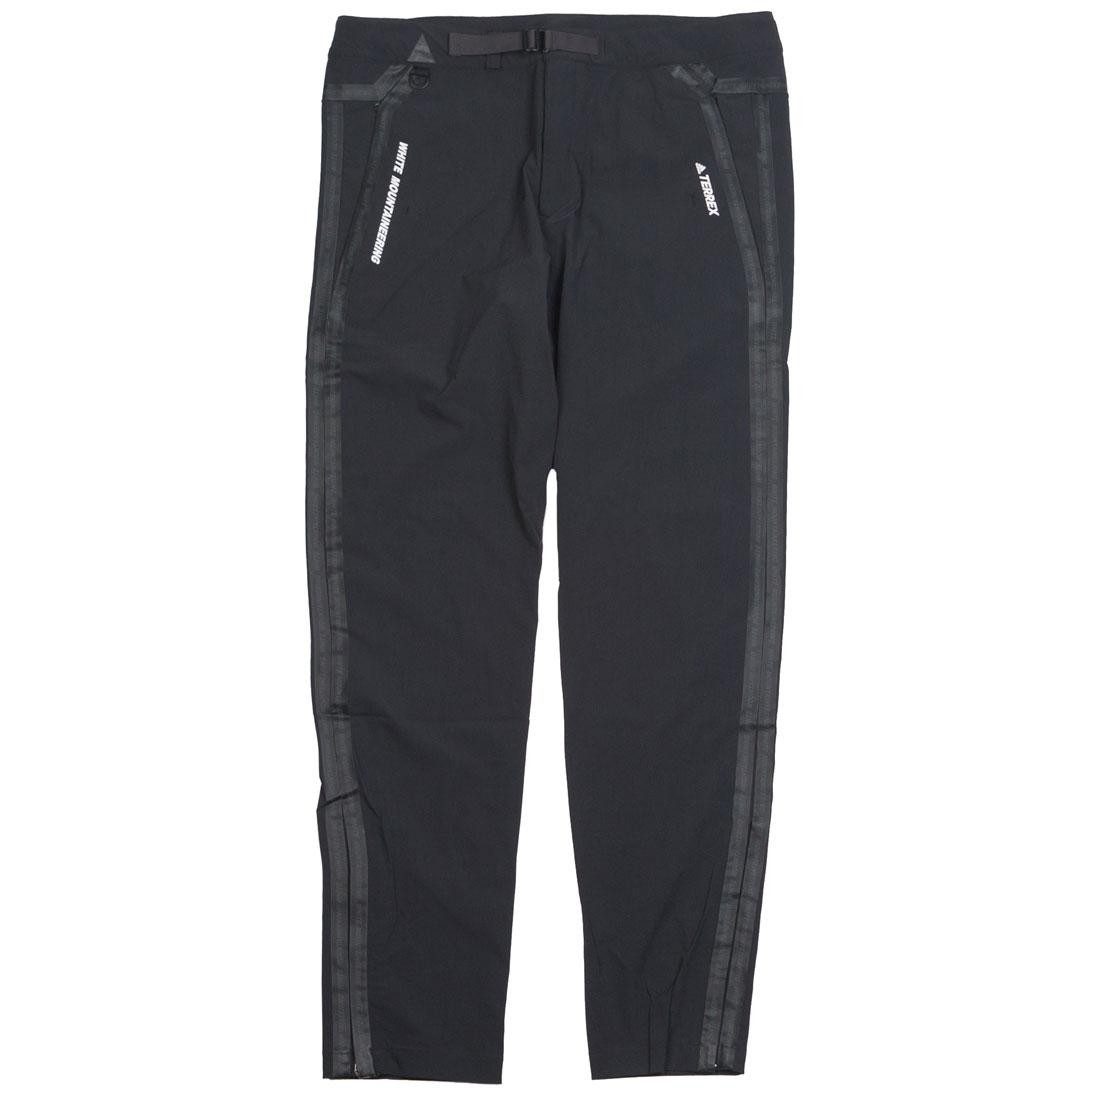 Adidas x White Mountaineering Men WM Slim Pants (black)